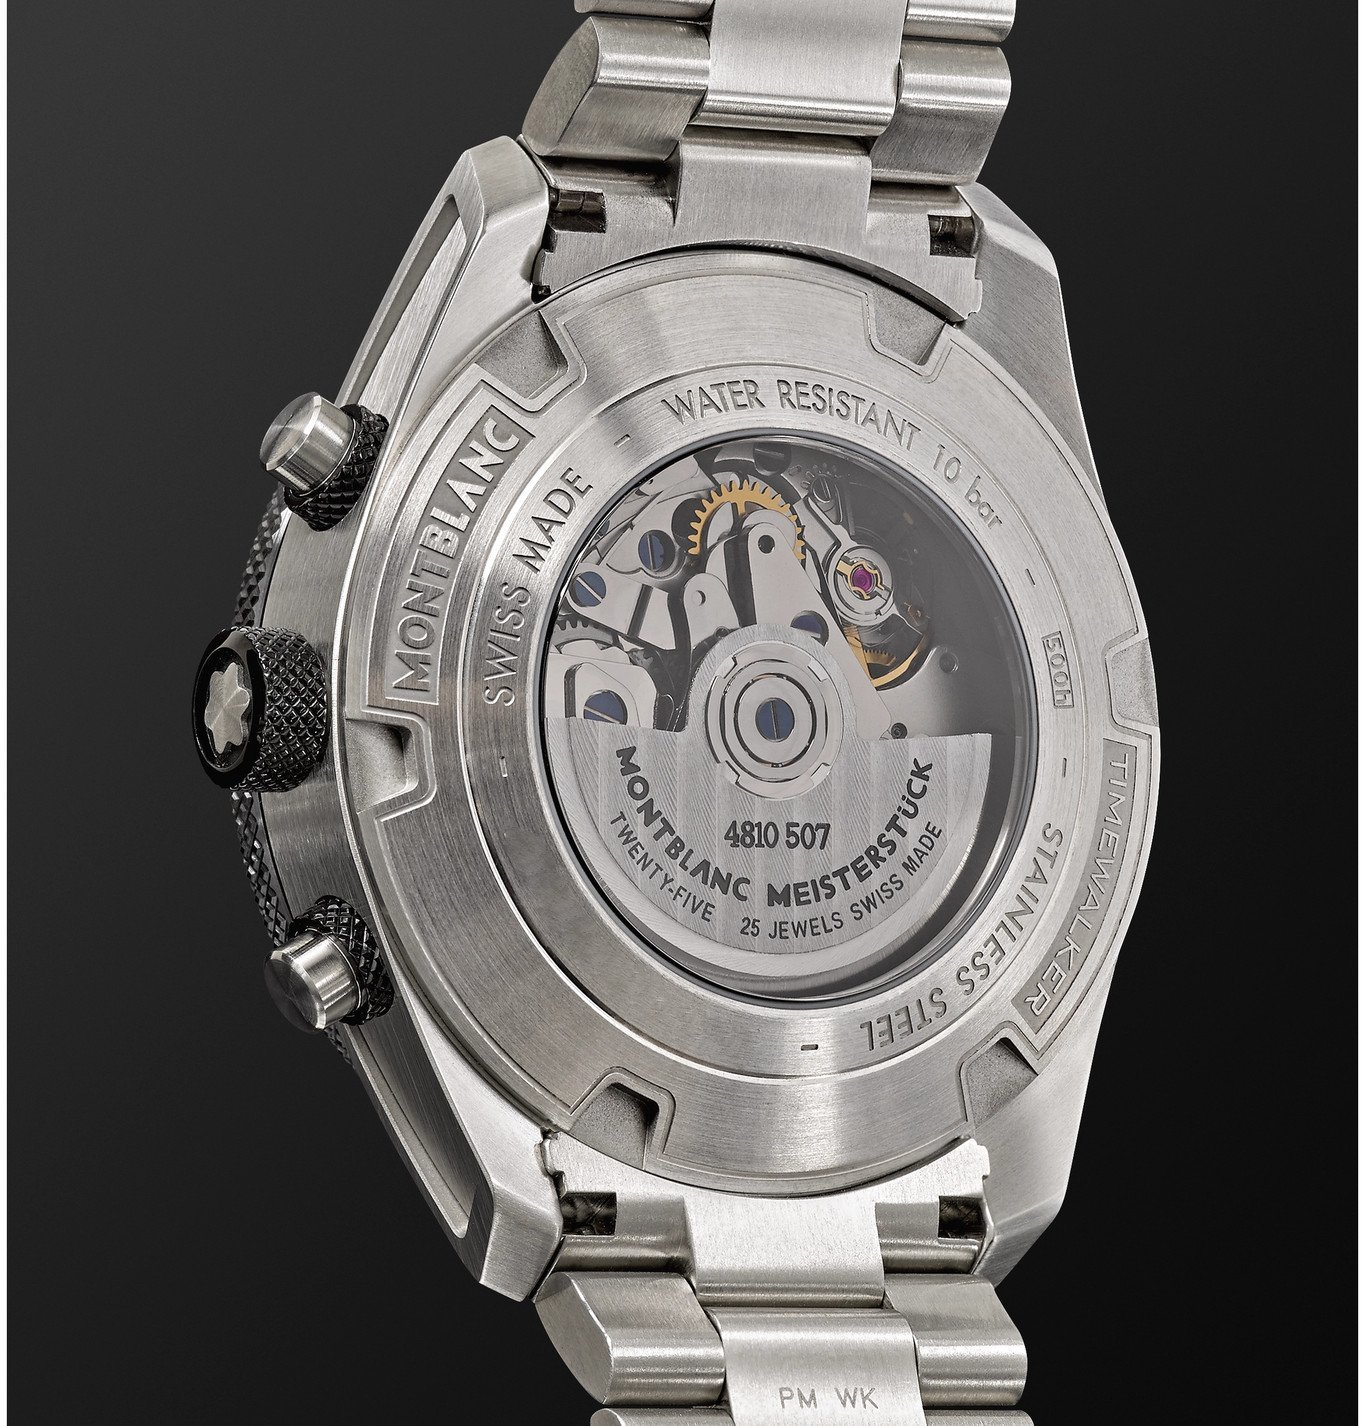 Montblanc - TimeWalker Chronograph Automatic 43mm Stainless Steel and Ceramic Watch, Ref. No. 116099 - Silver